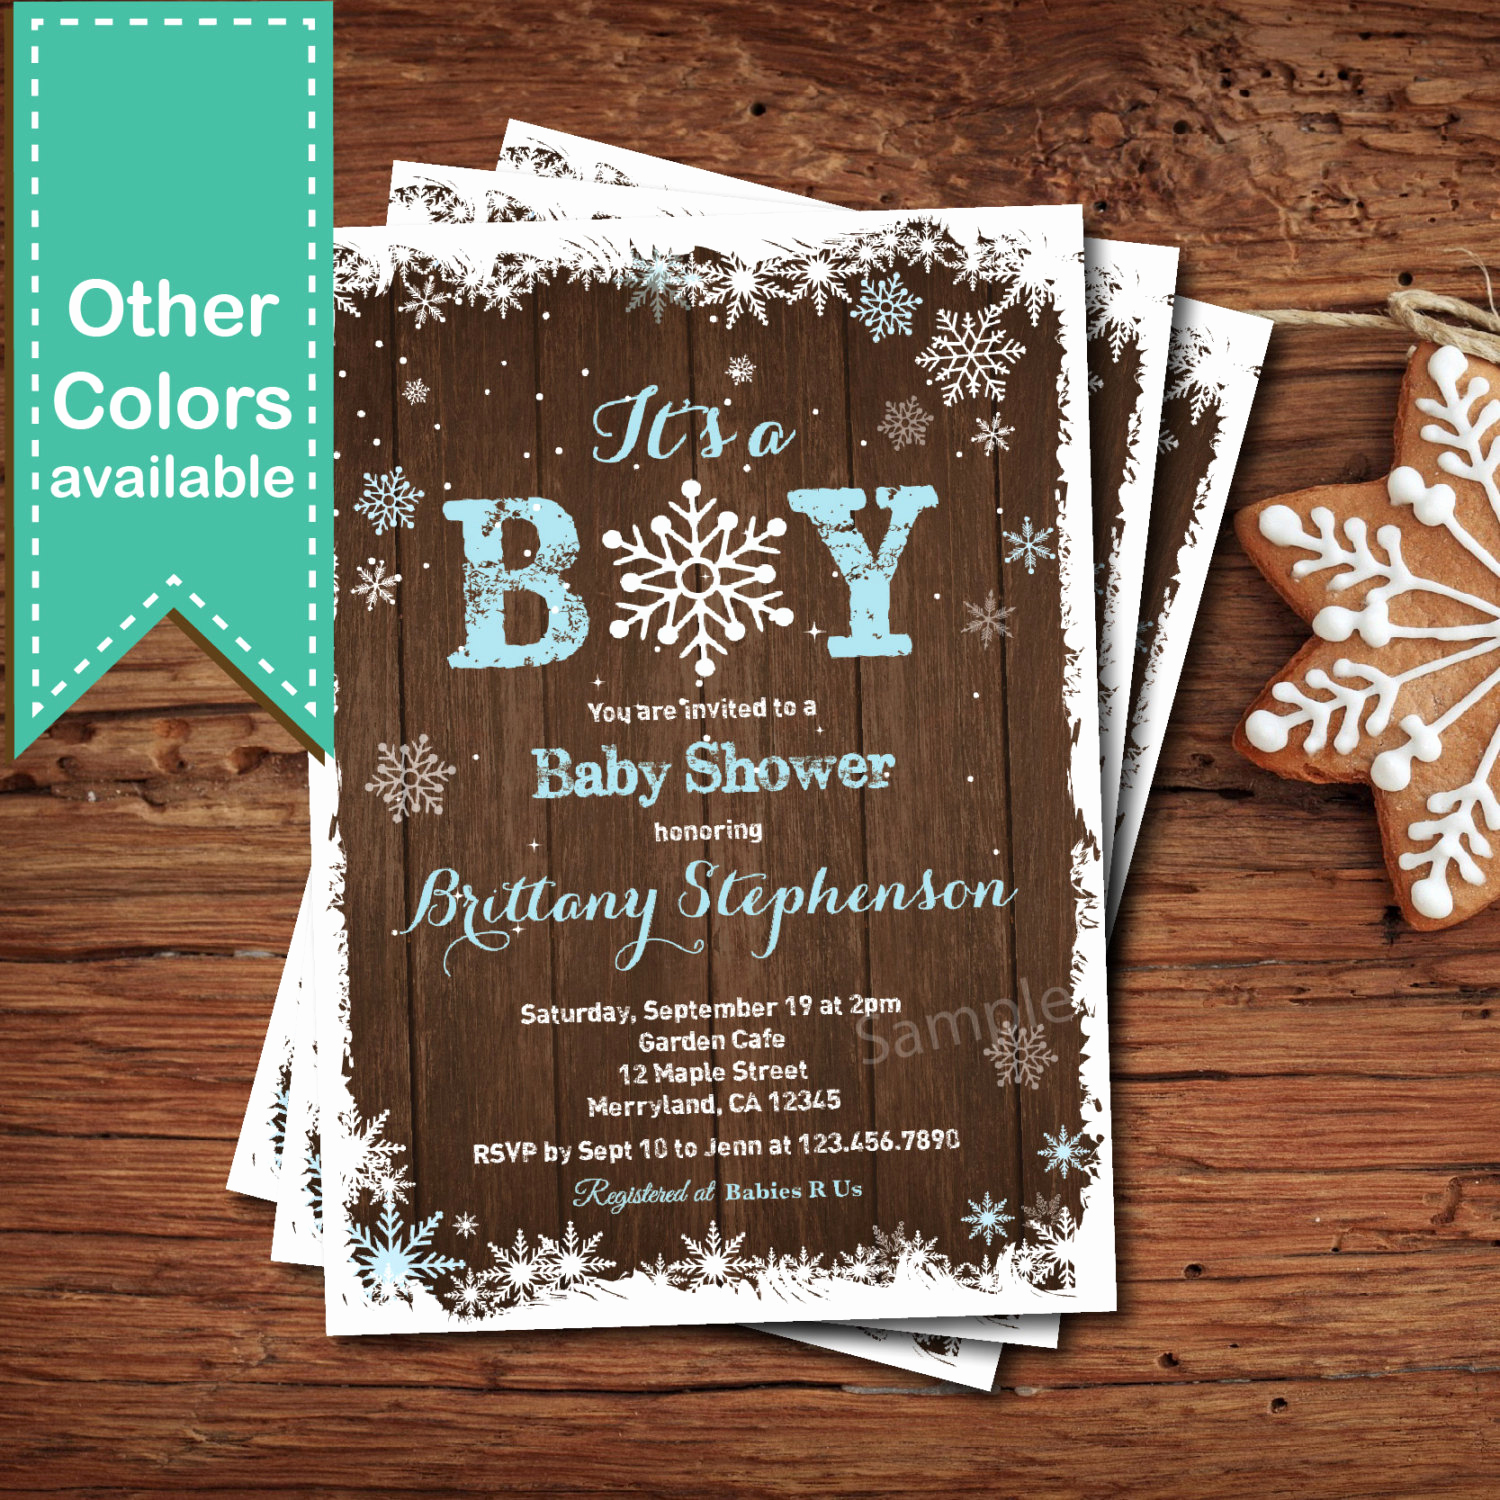 Winter Baby Shower Invitation Awesome Winter Baby Boy Shower Invitation Rustic Wood Snowflakes